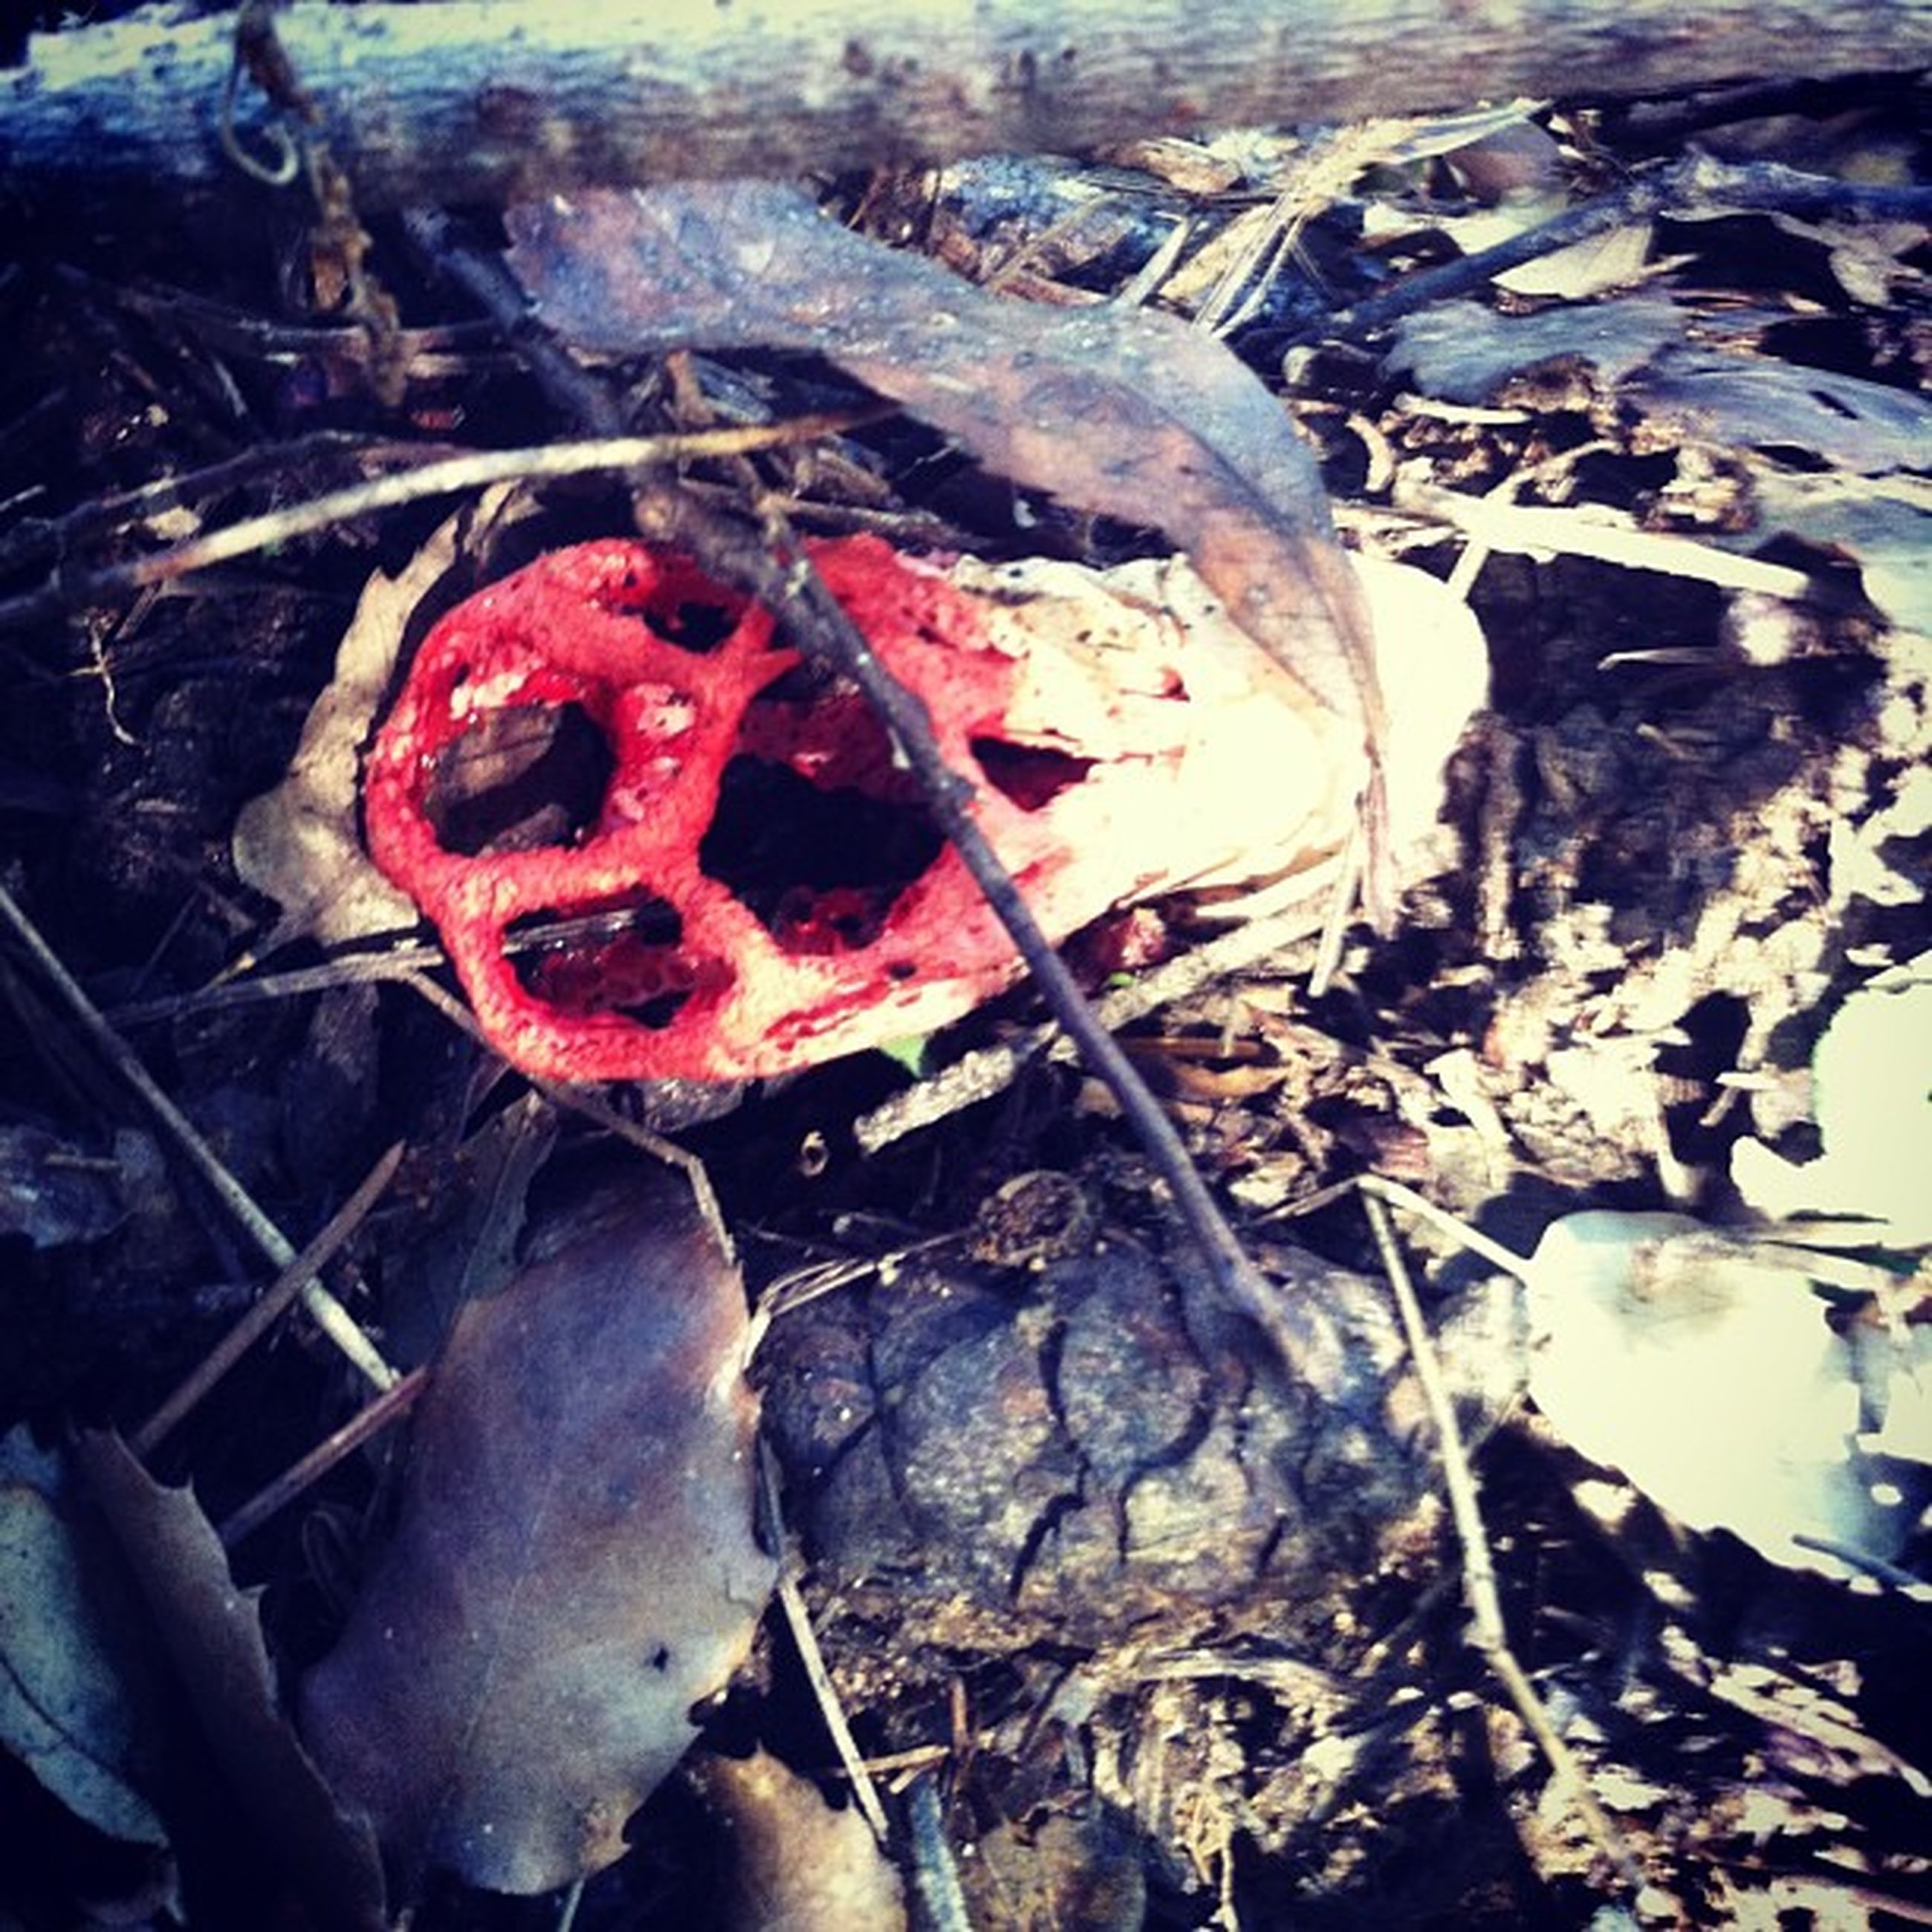 close-up, red, high angle view, damaged, day, abandoned, outdoors, no people, mushroom, messy, fungus, field, food and drink, metal, deterioration, broken, freshness, nature, food, burning